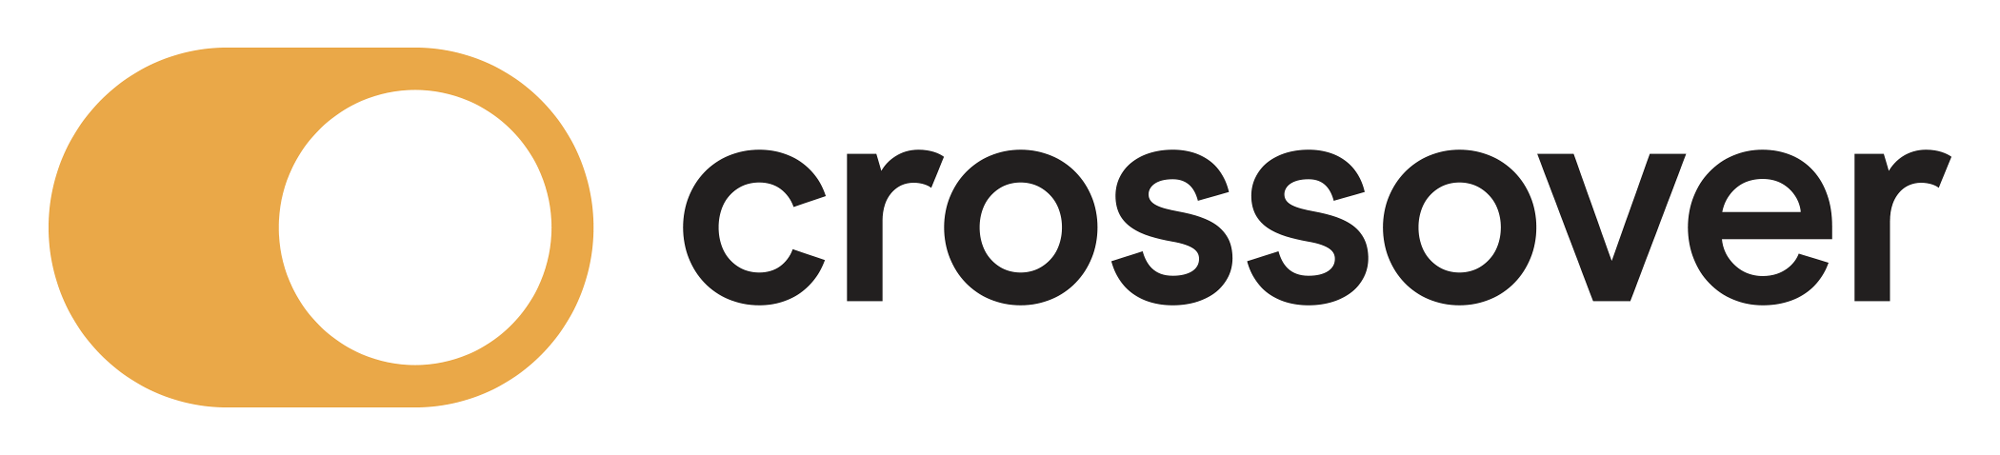 New Logo for Crossover Health by Wolff Olins